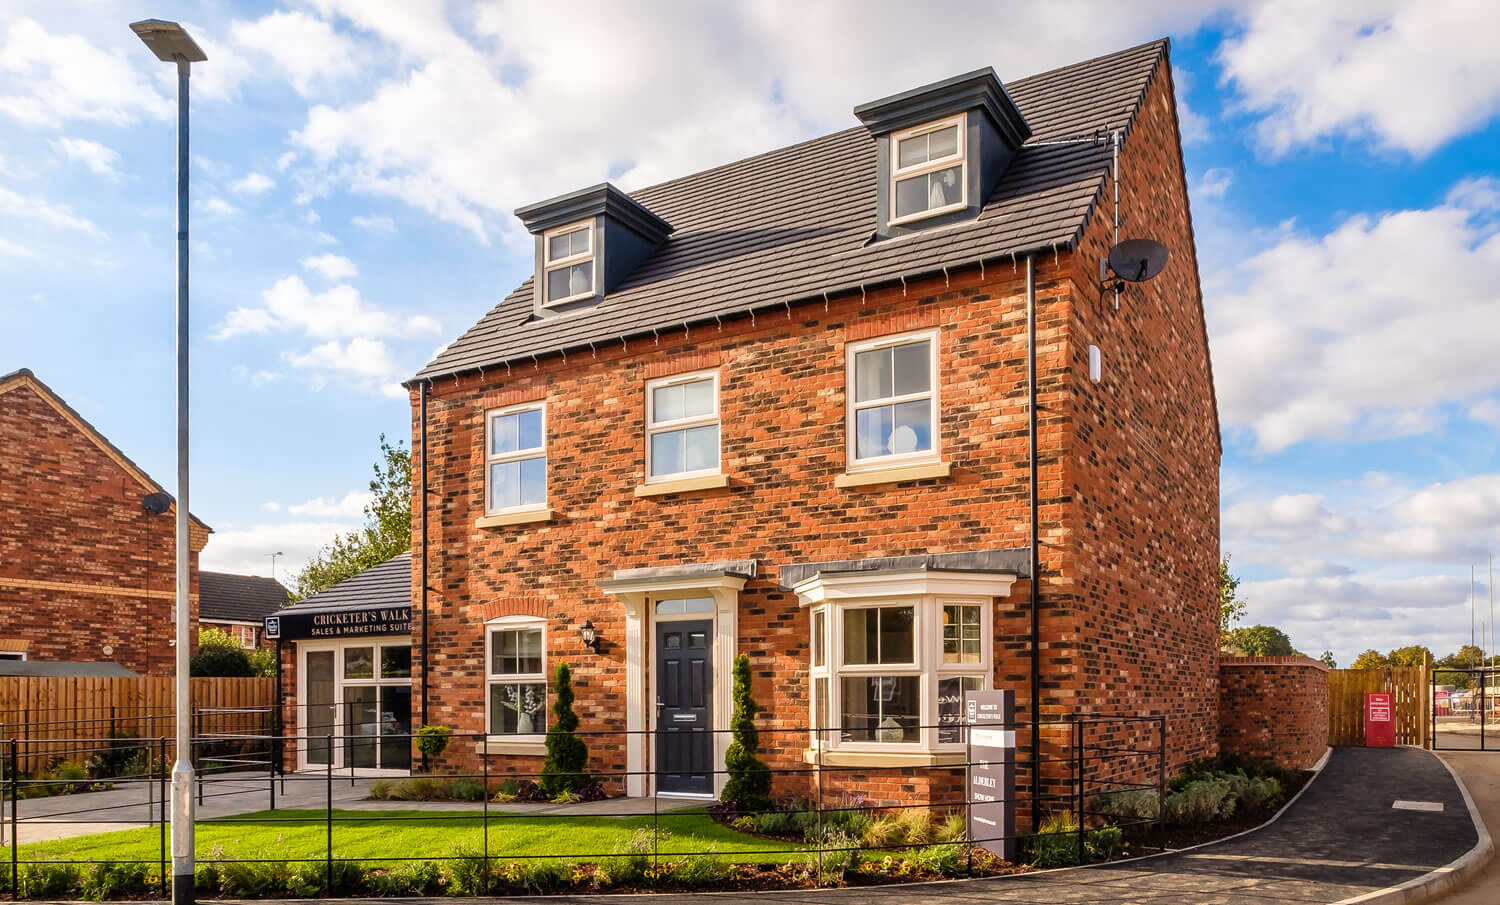 Cricketers' Walk Show Home